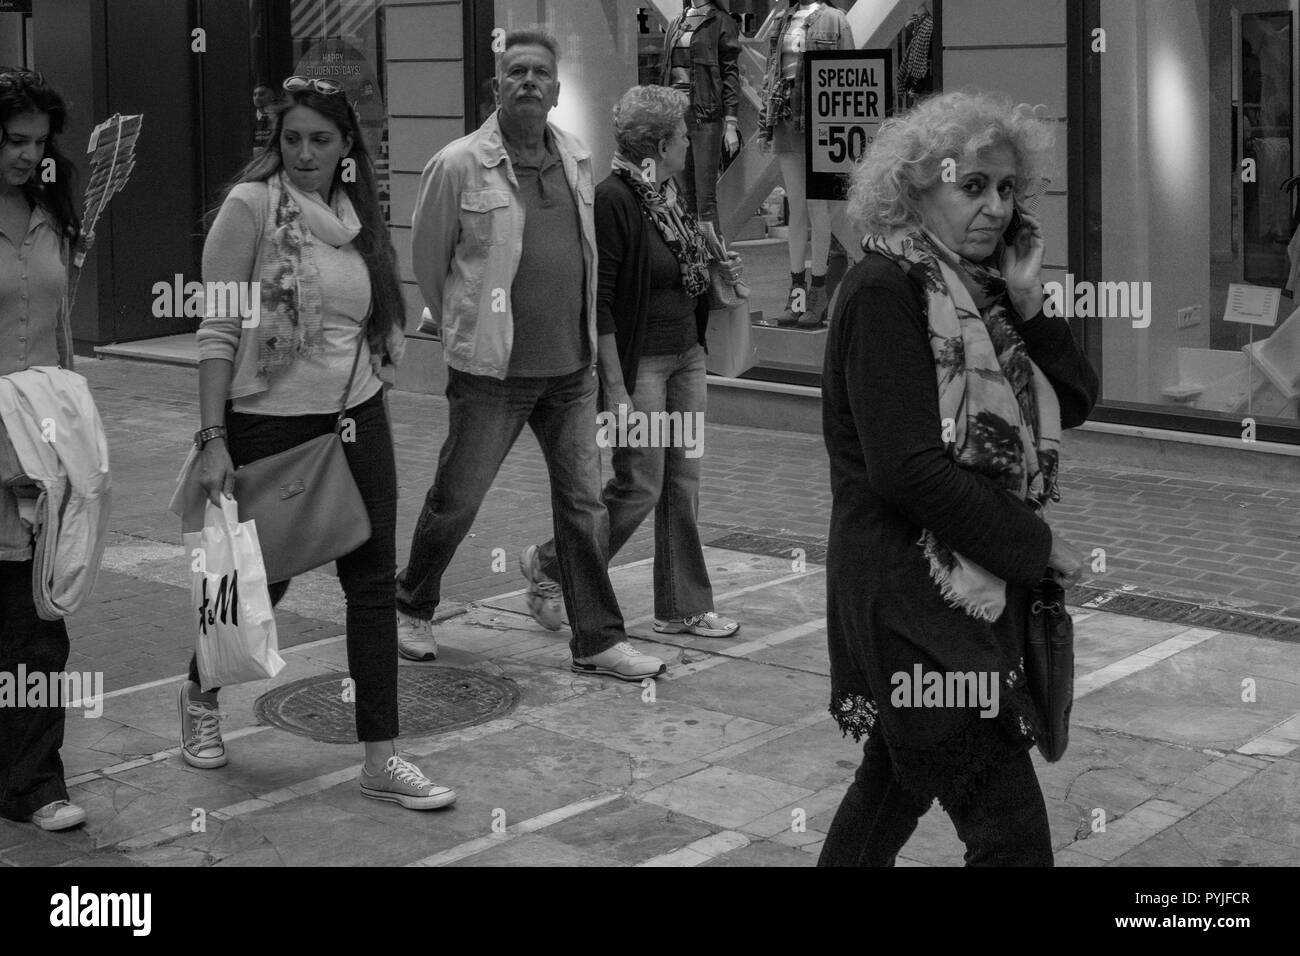 Saturday morning, people walking in Athens Greece. - Stock Image